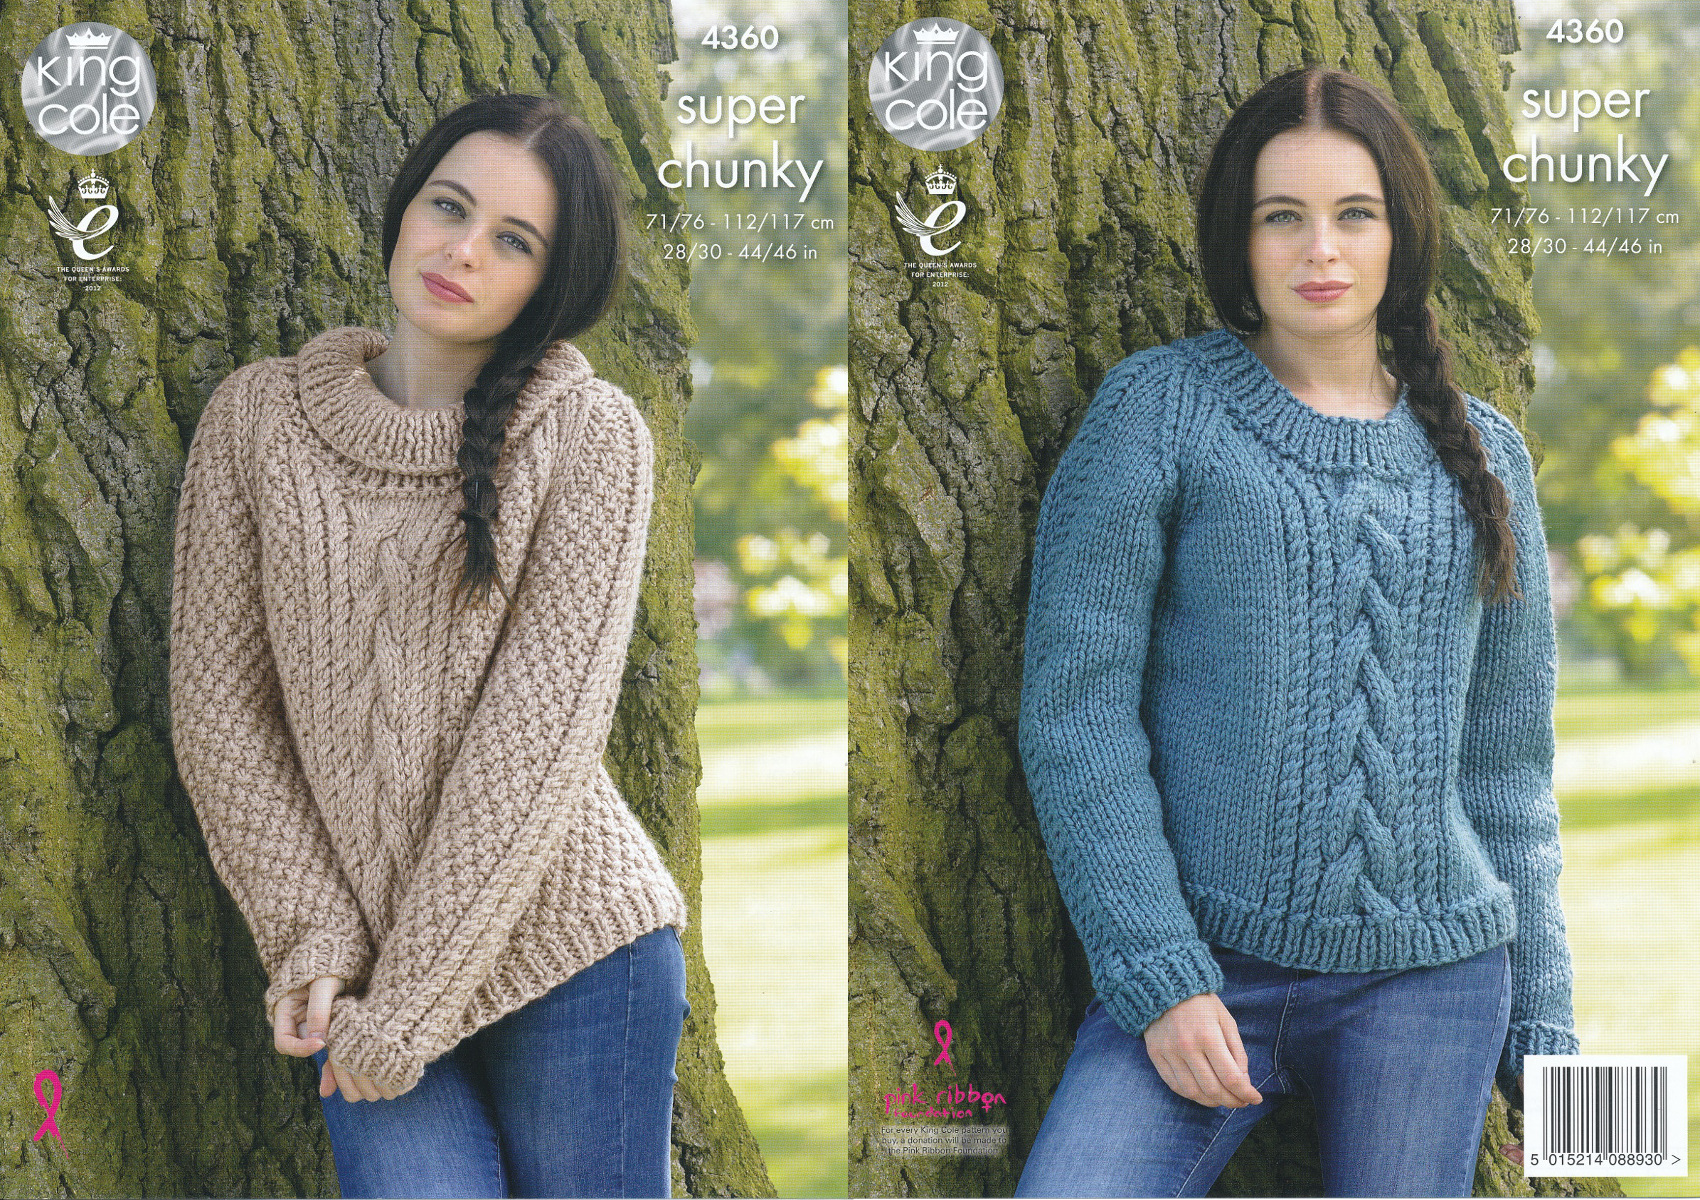 e9827890a Ladies Super Chunky Knitting Pattern King Cole Cable Knit Sweaters ...